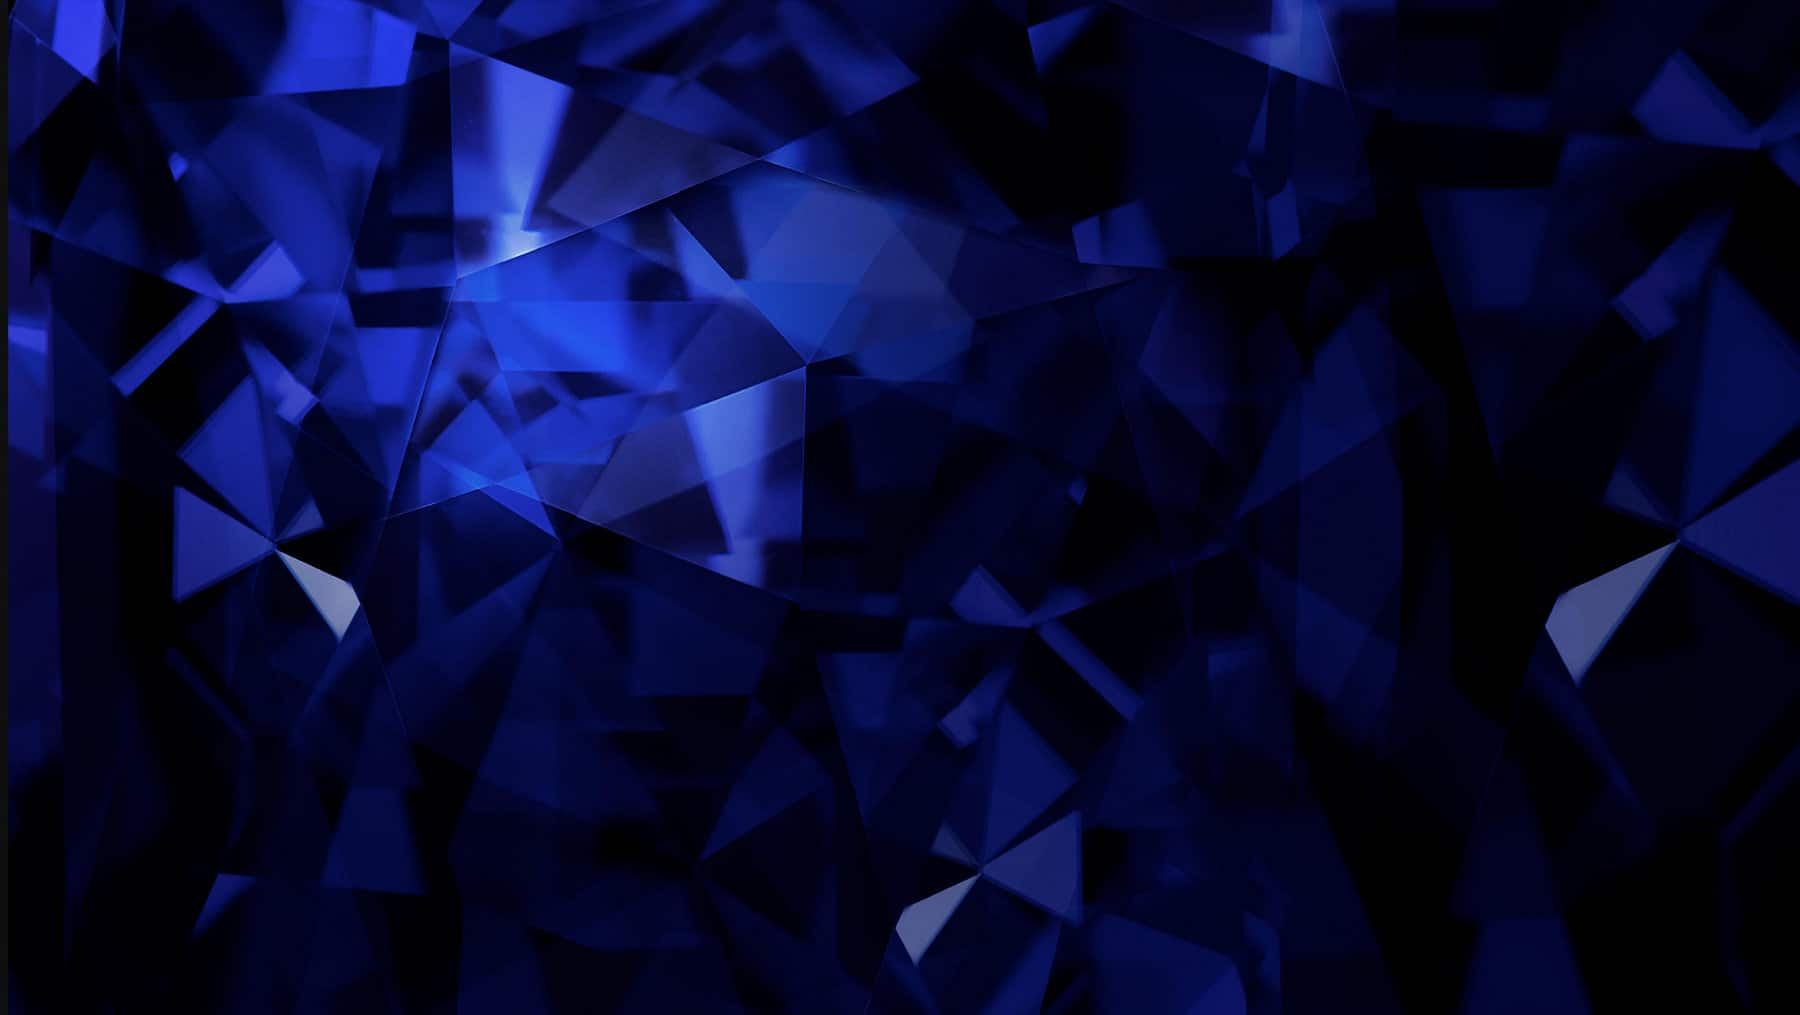 A color photo shows an extreme closeup of the many facets of translucent purplish-blue gemstone with hints of light reflected.